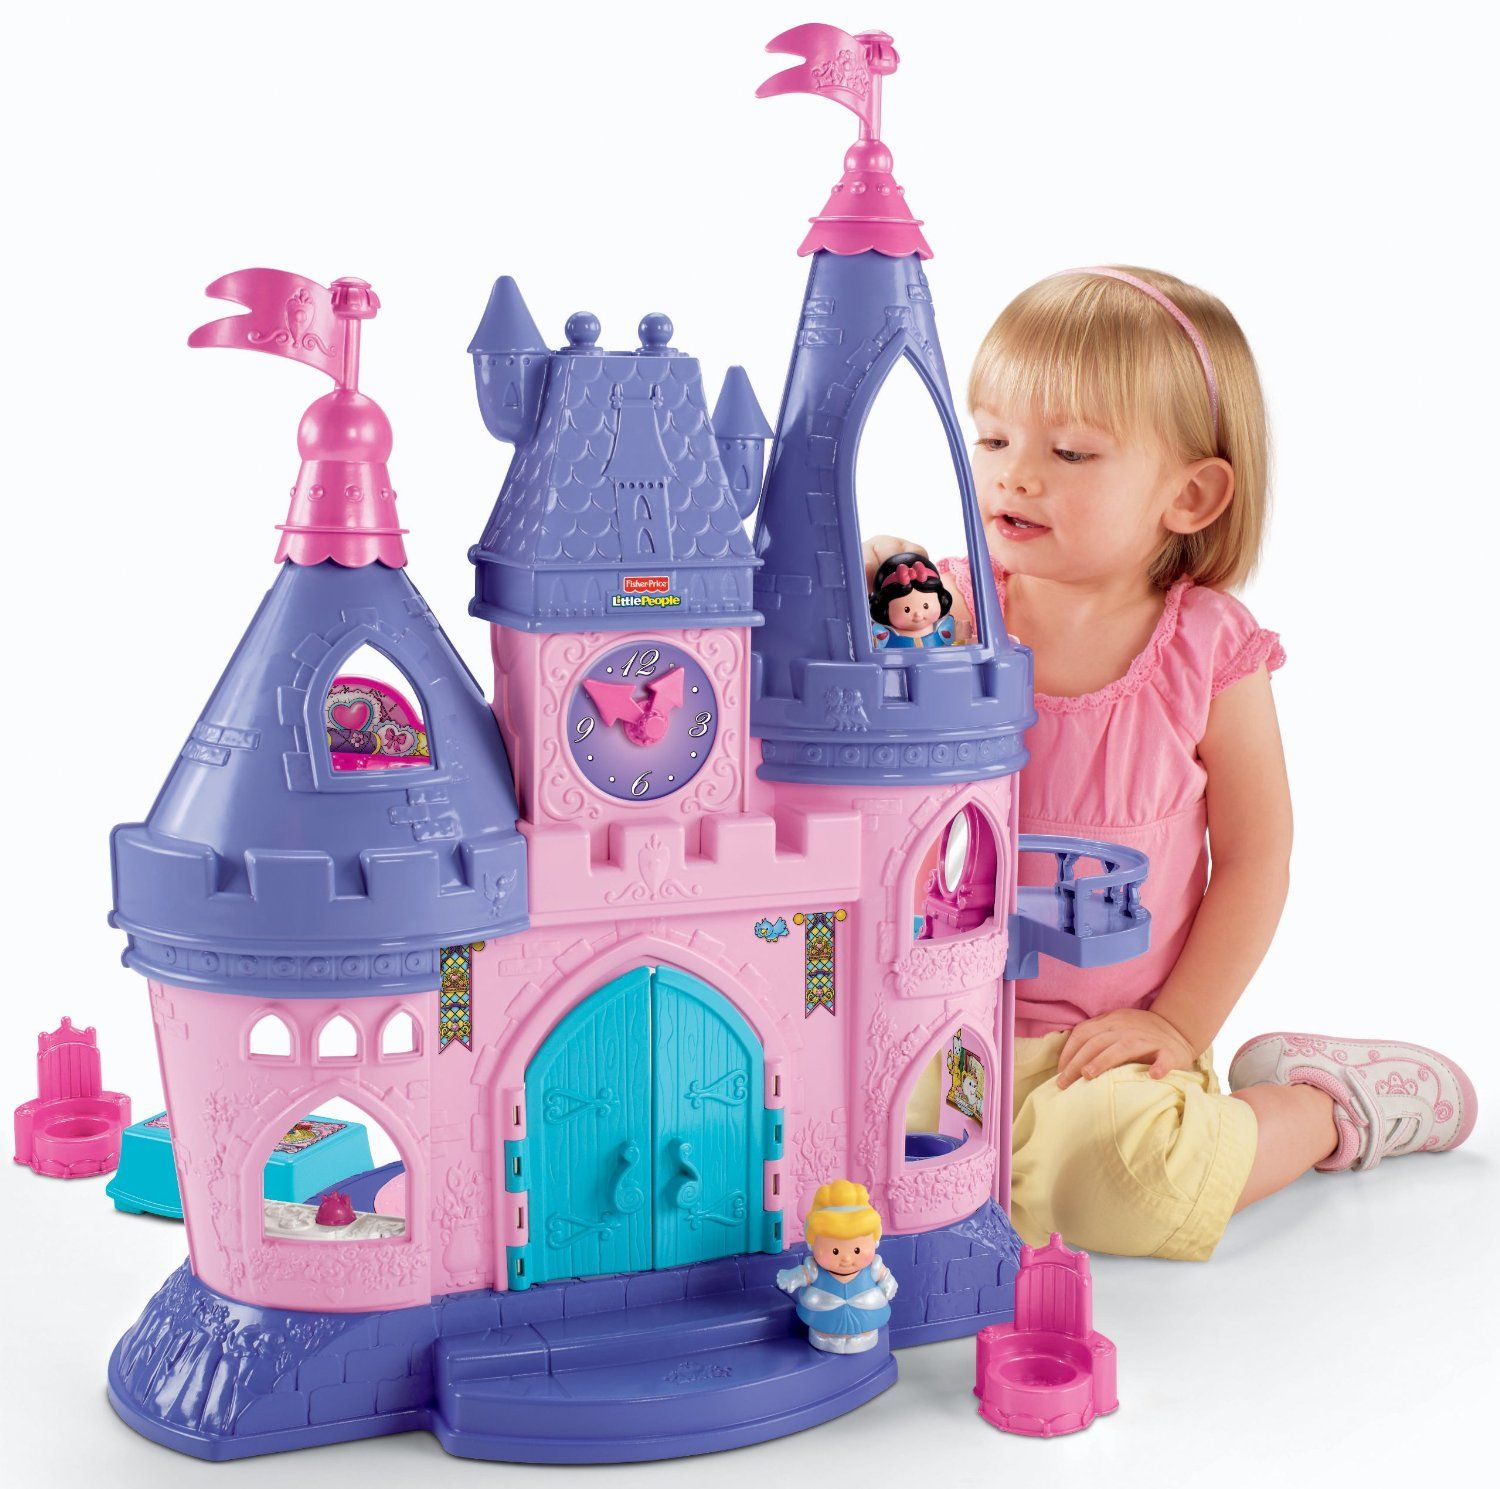 Permalink to The Best Of Best toys for 2 Year Girl Pictures